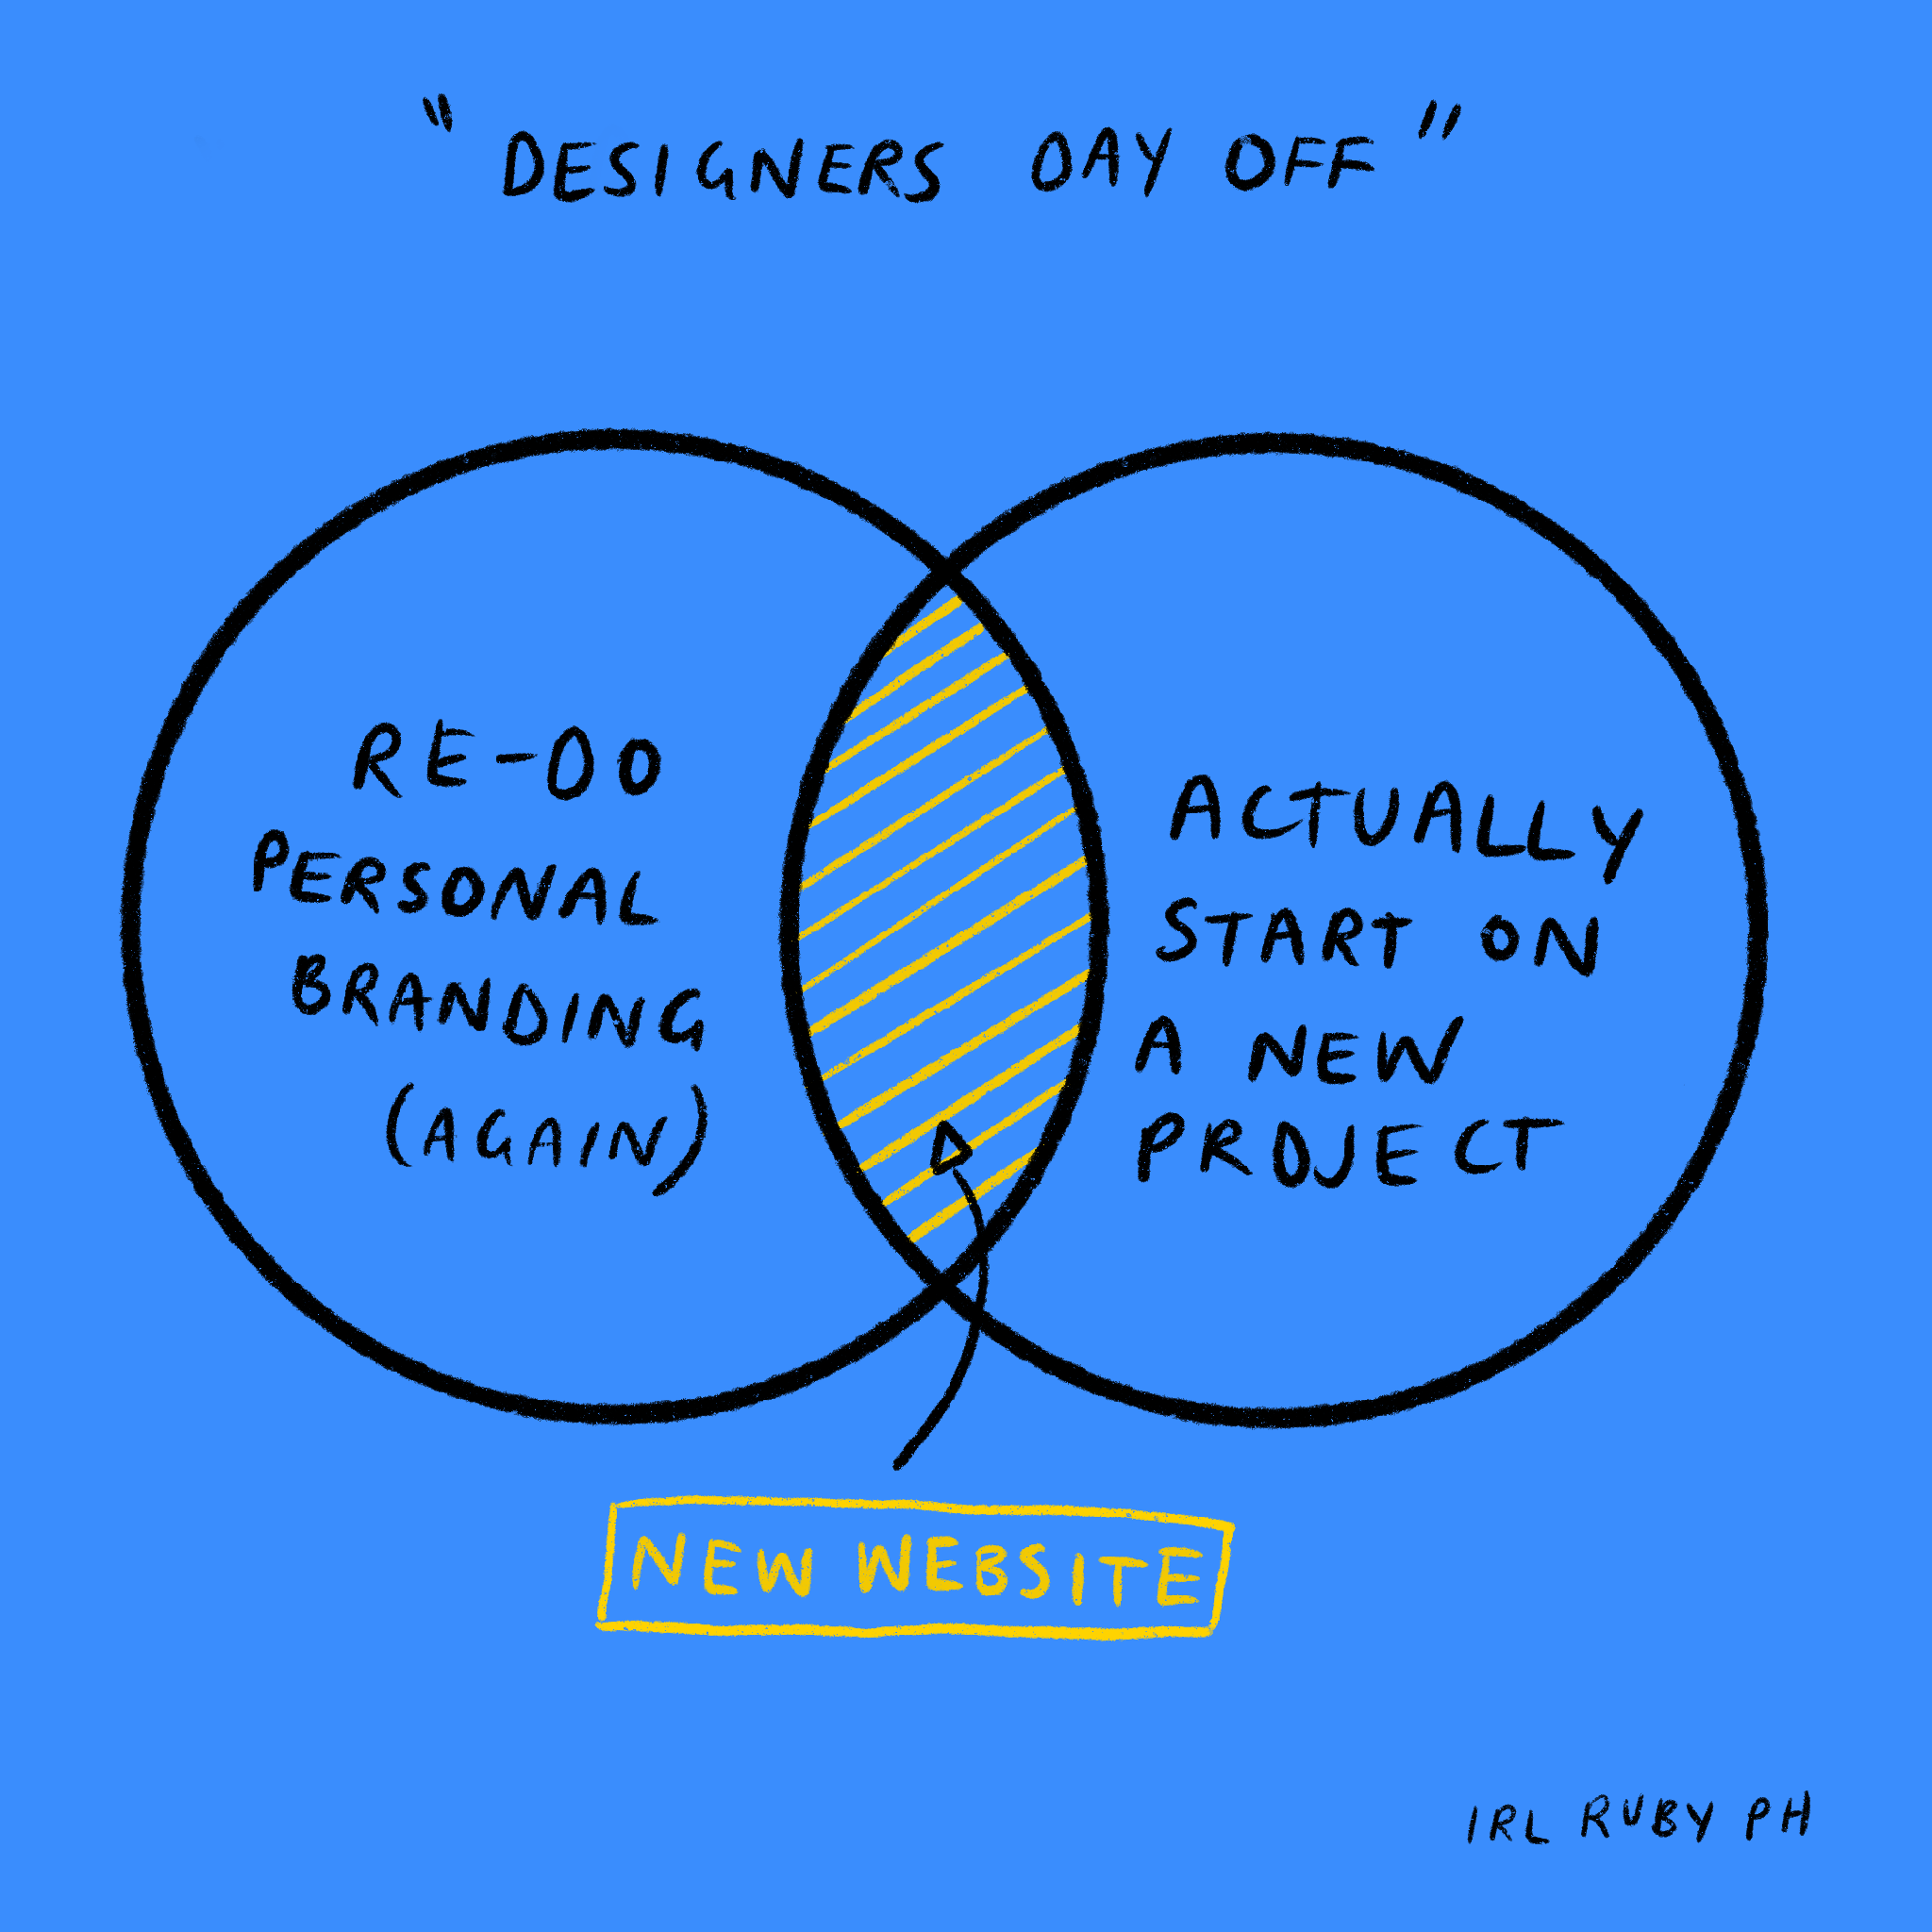 Designers Day Off - 2019